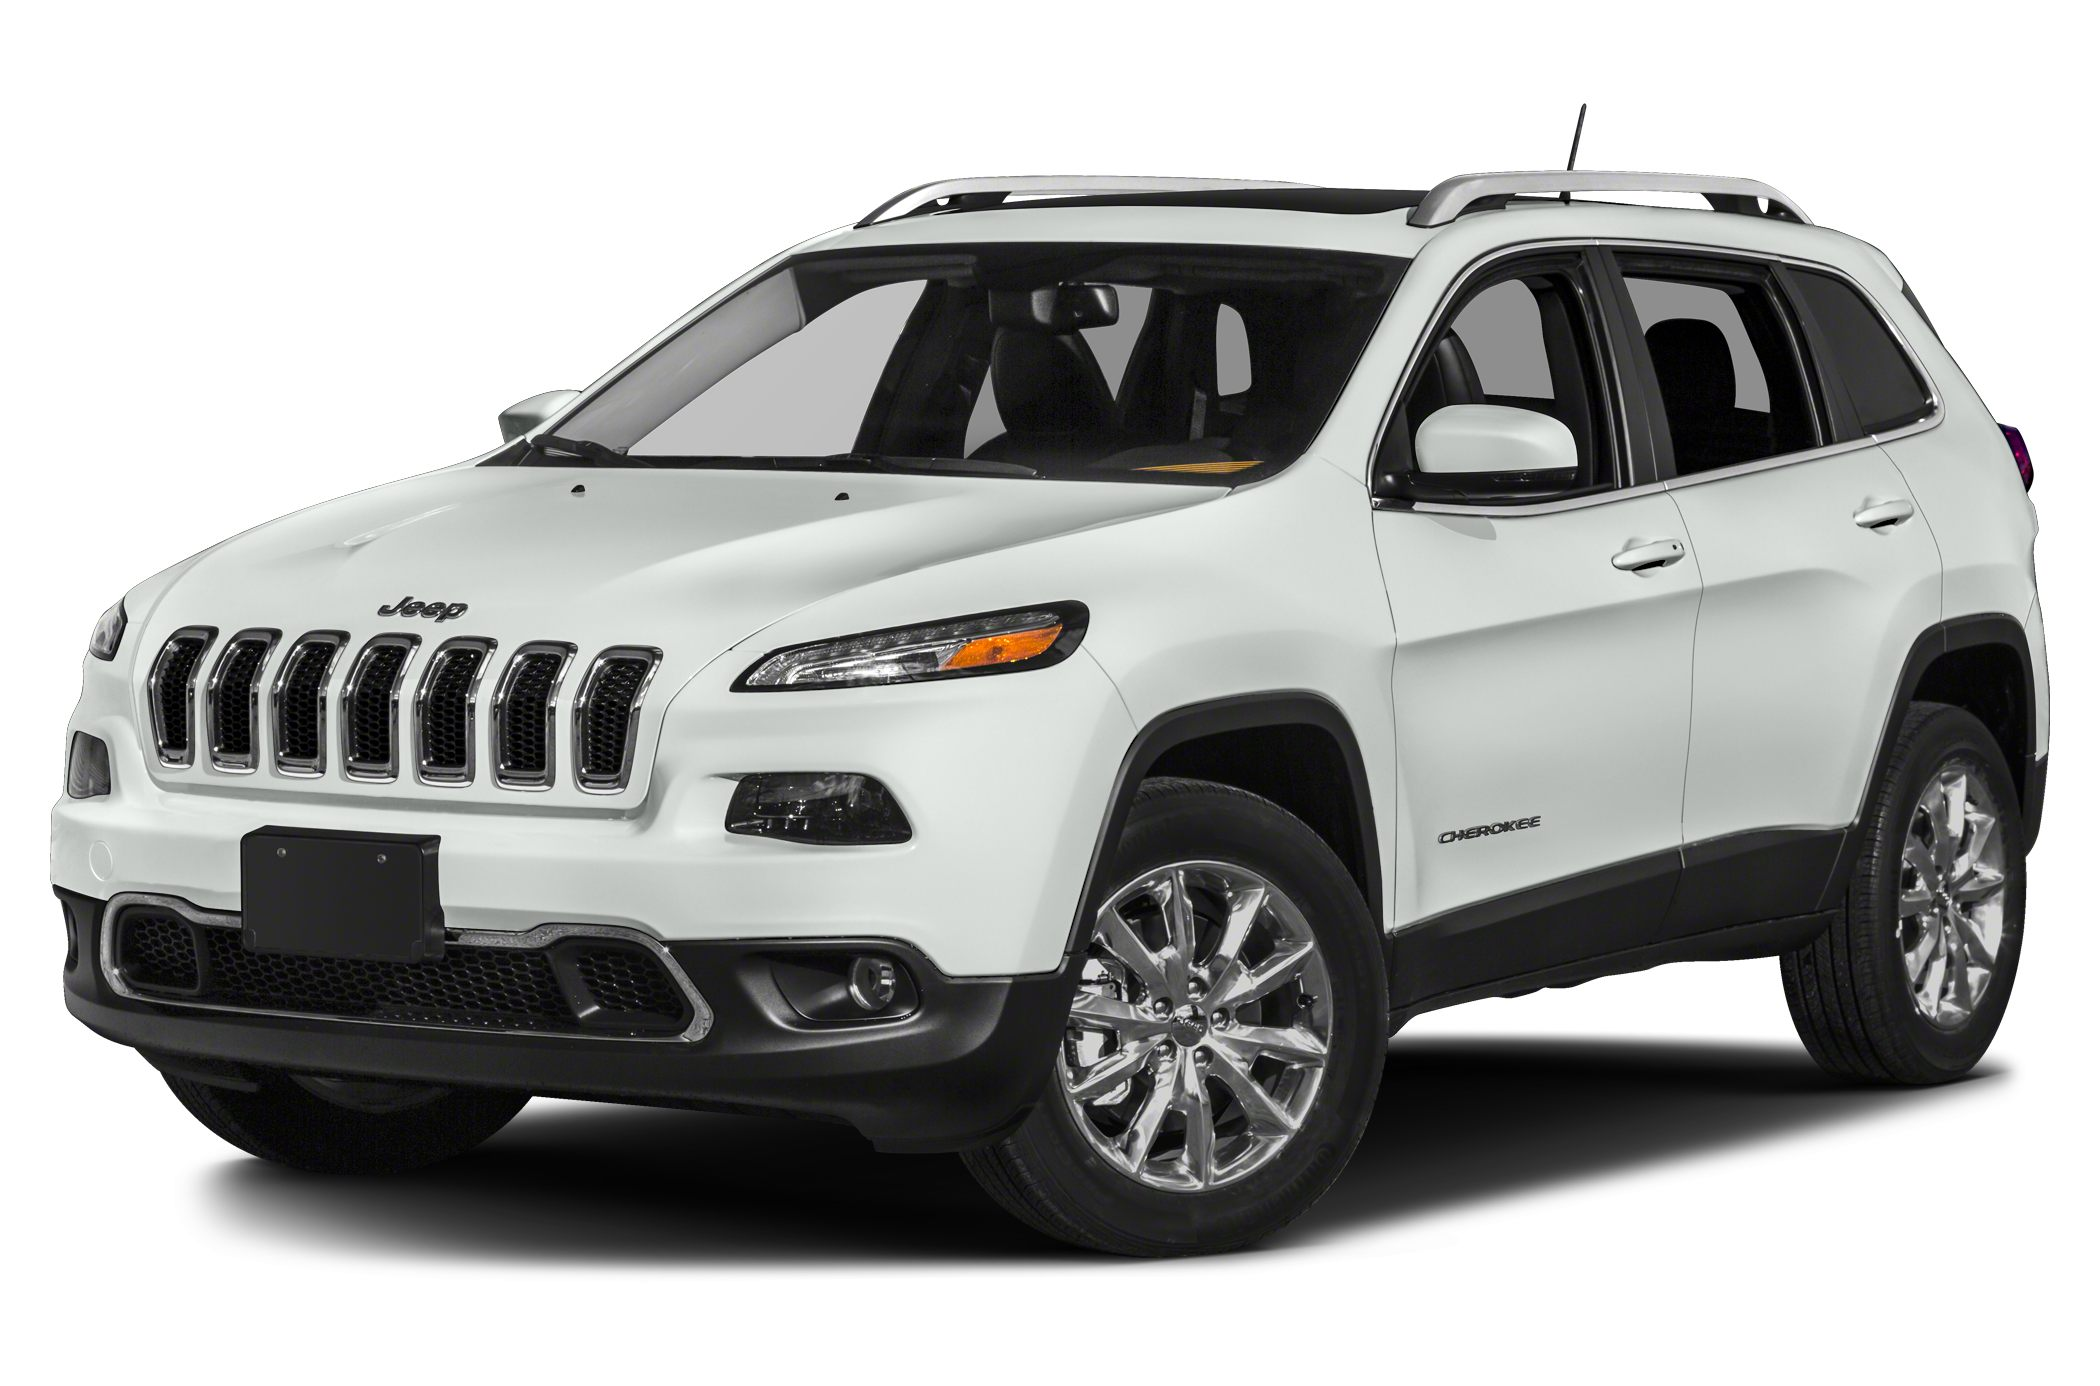 2016 jeep cherokee limited for sale vin 1c4pjmdb1gw